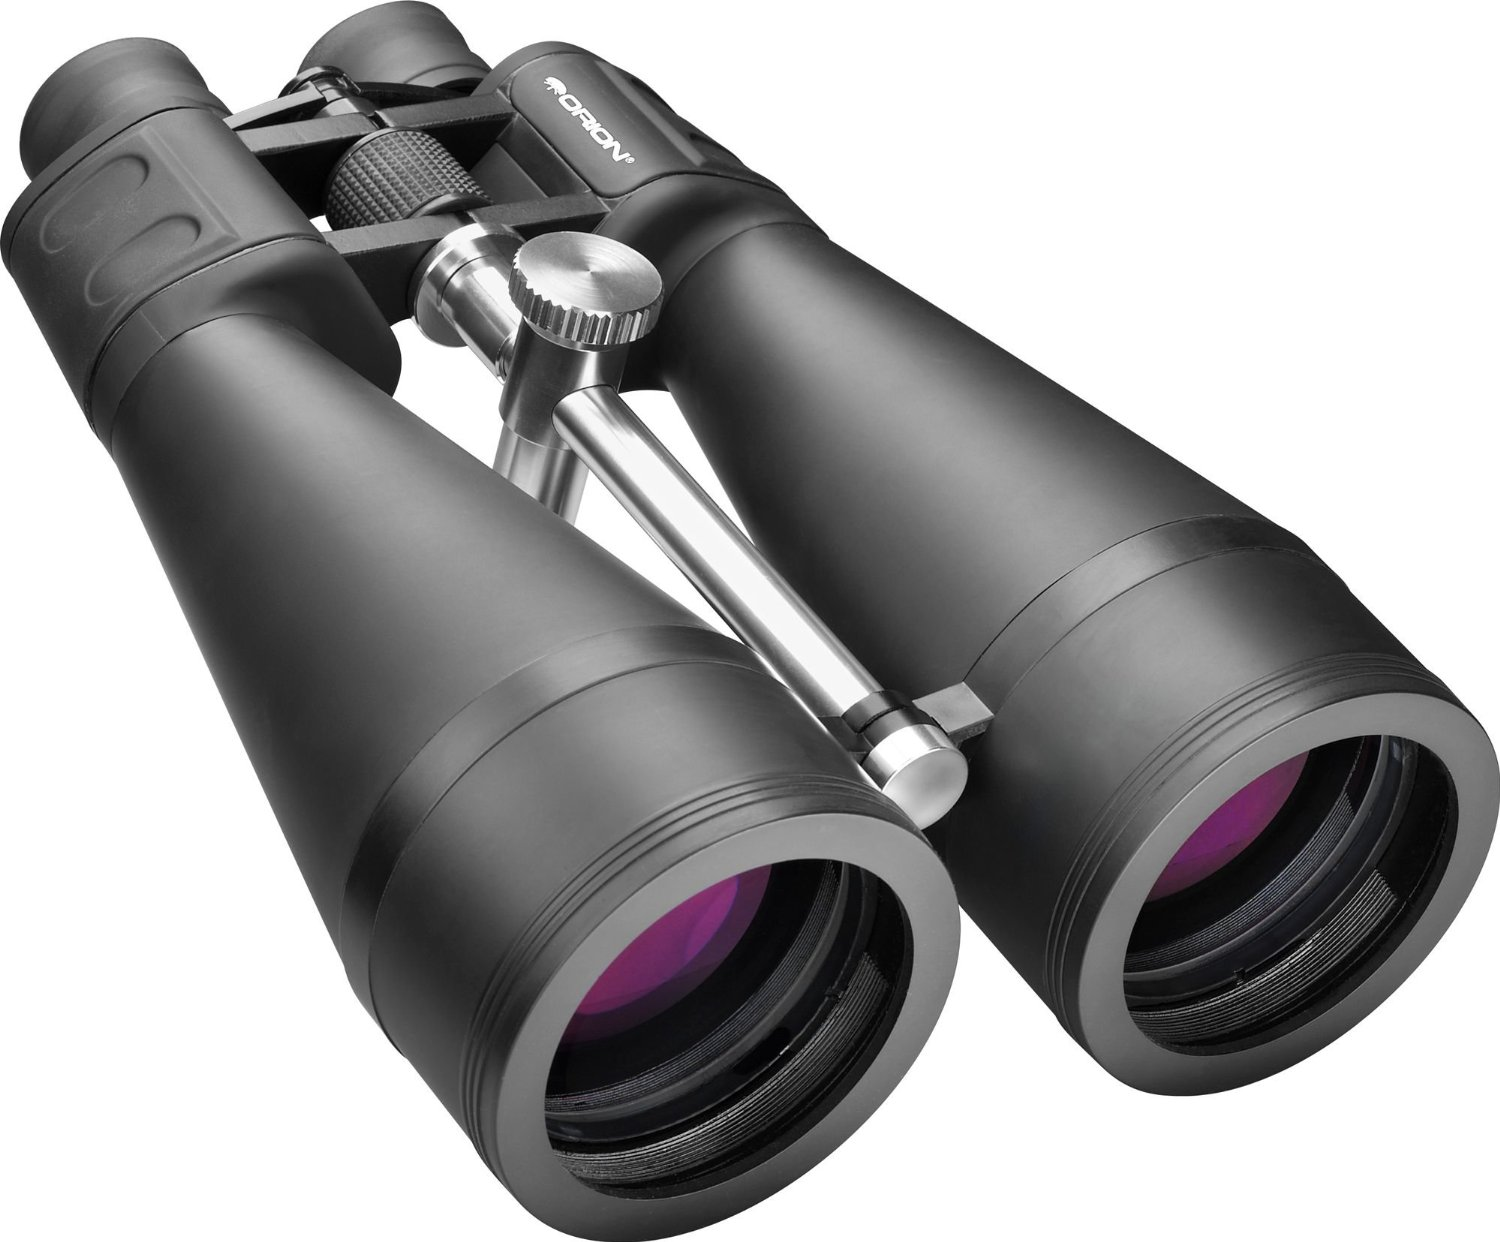 Best Binoculars Reviews: Compact, Hunting, and Birding